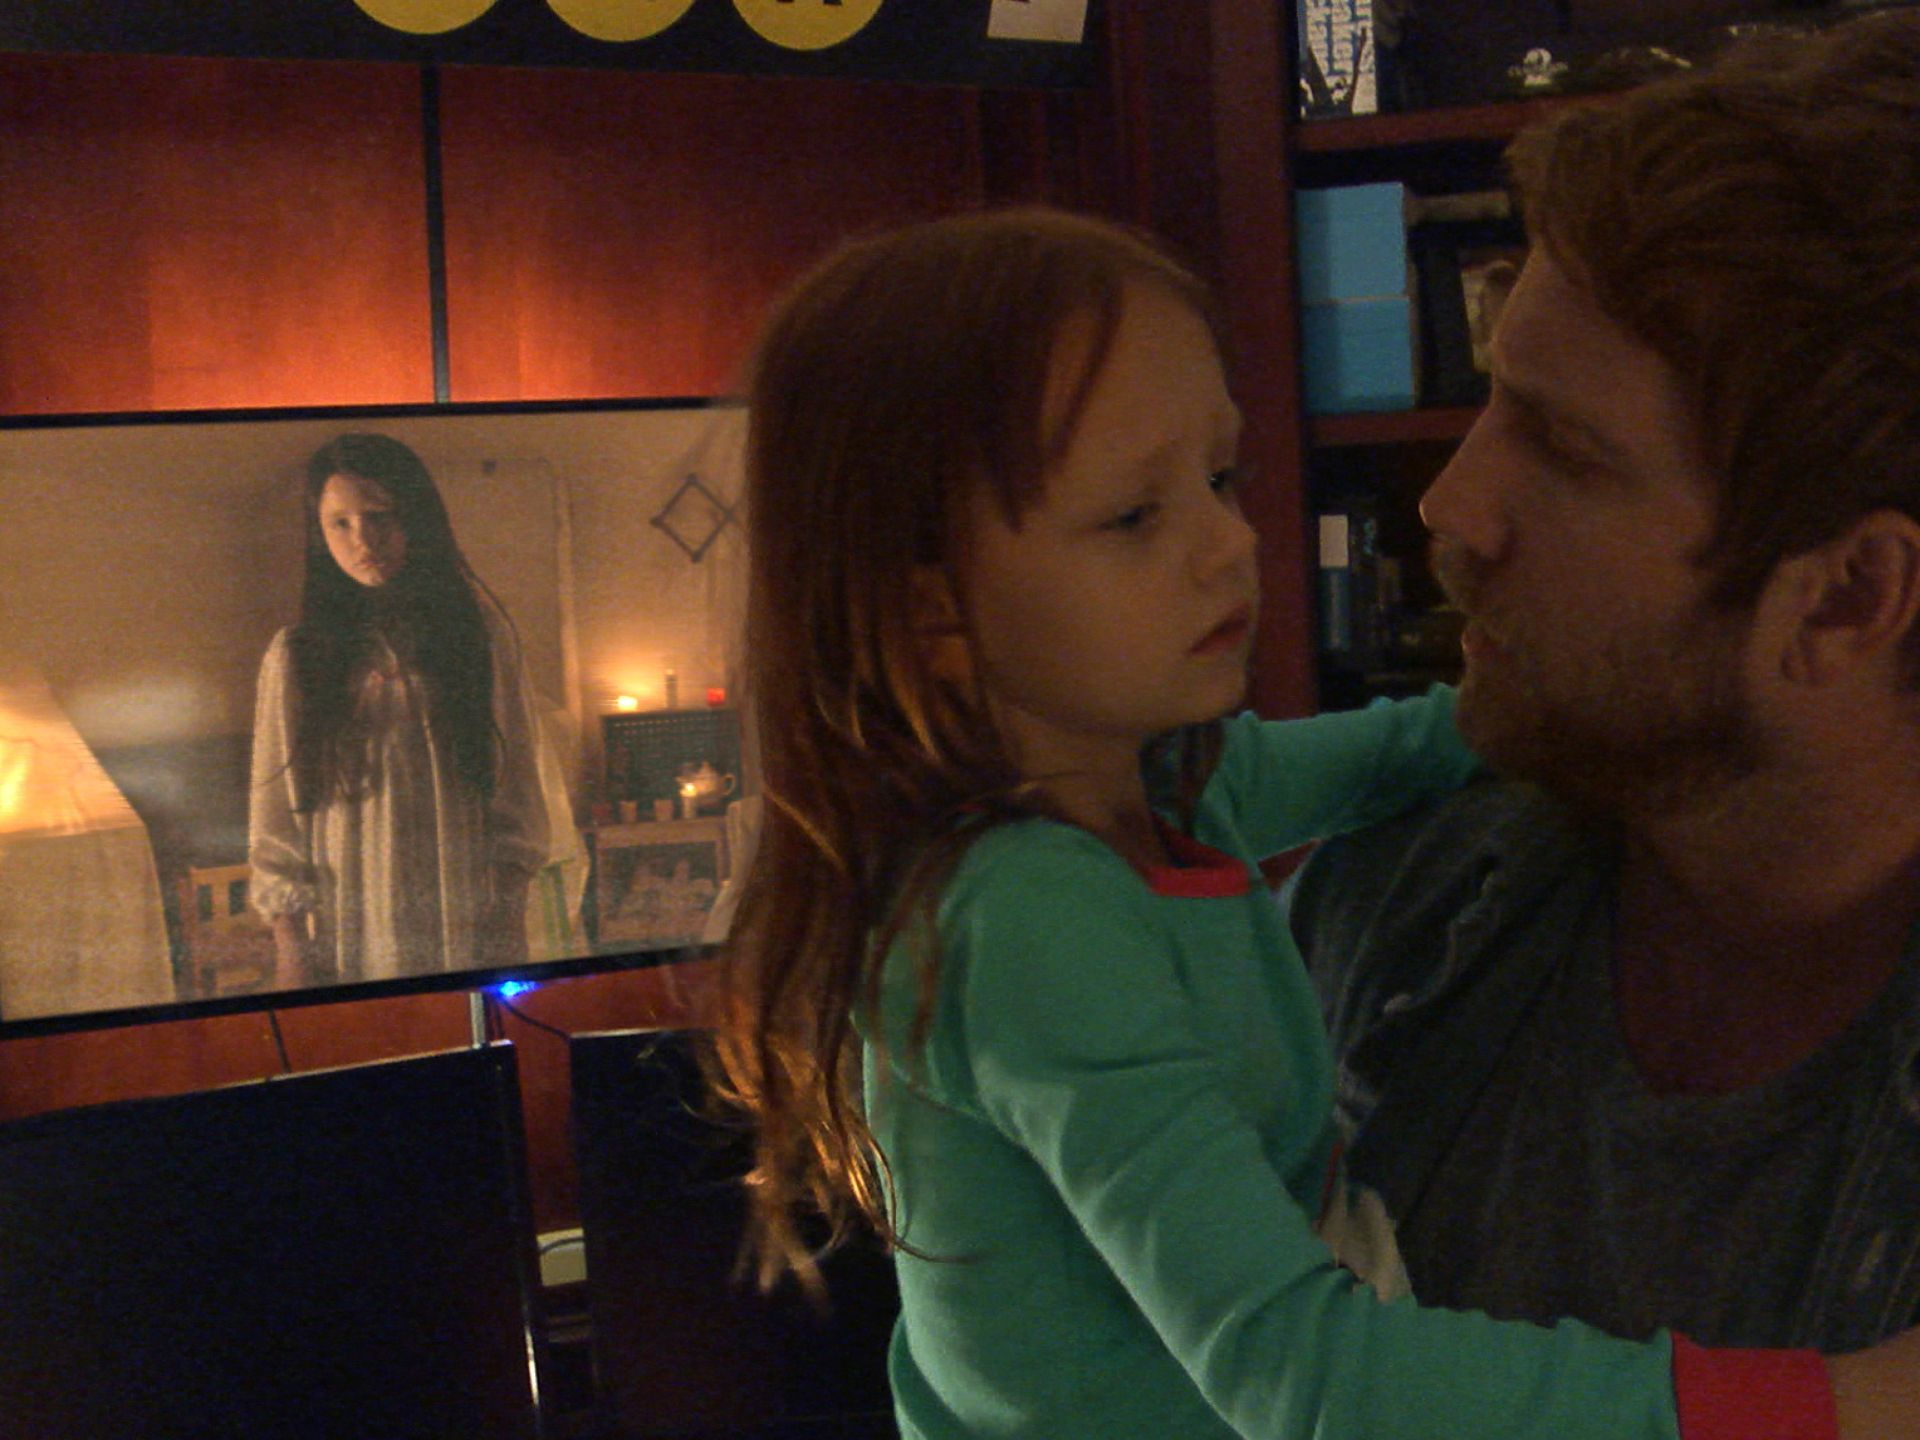 Foto de Imágenes de 'Paranormal Activity: The Ghost Dimension' (2/3)